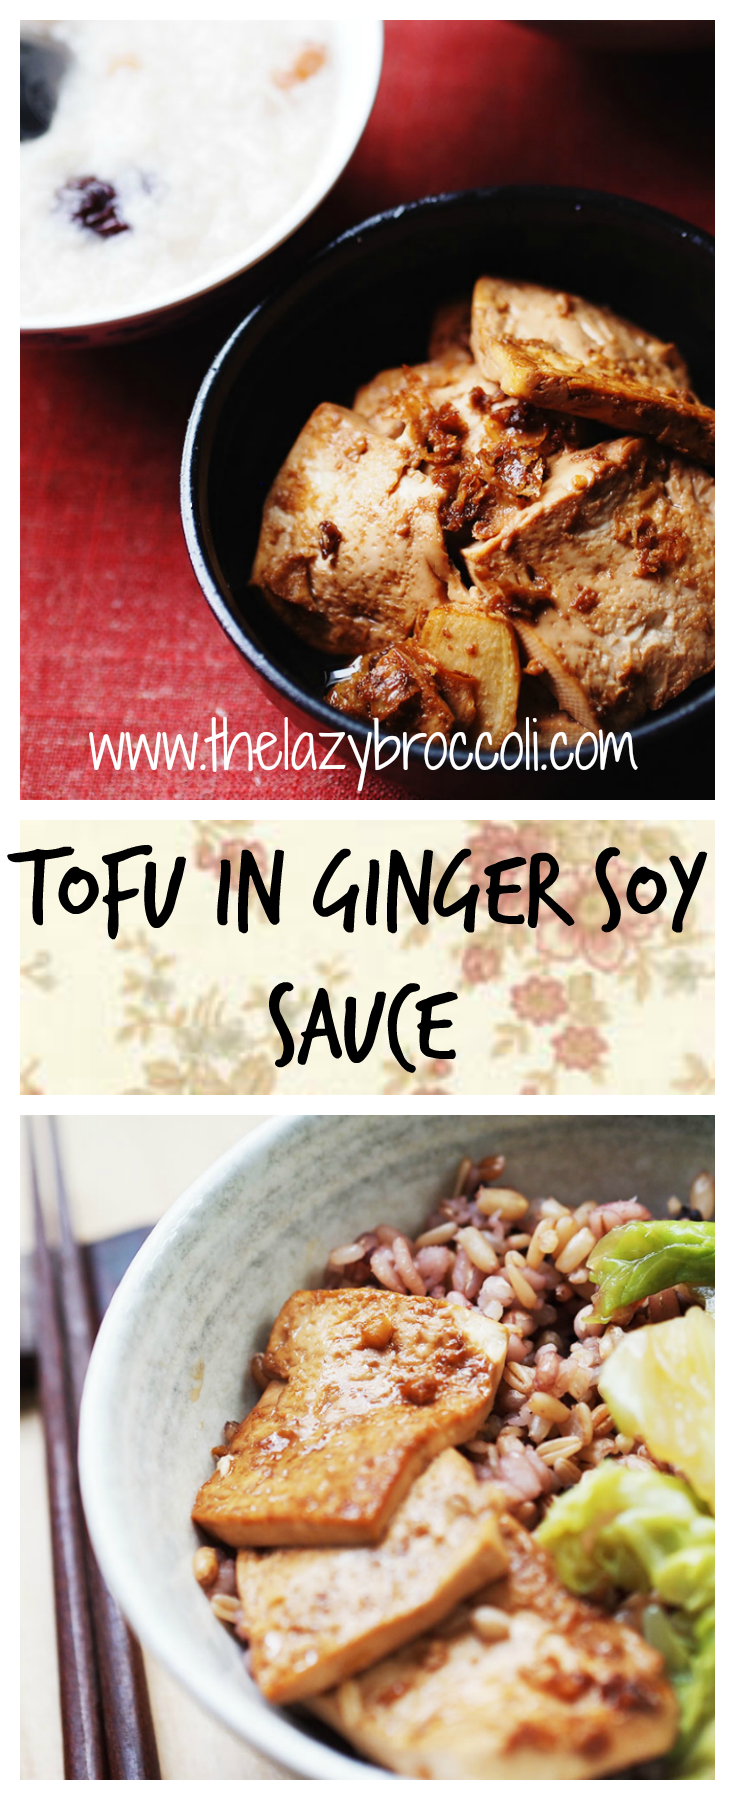 This tofu in ginger soy sauce is a great companion for rice or congee. It's salty with a hint of sweetness, and the ginger really complements the dish well. It's so easy to make so no excuses! #tofu #ginger #soysauce #vegan #vegetarian #noonionnogarlic #asian #chinese #recipe #glutenfree #lowcarb #thelazybroccoli